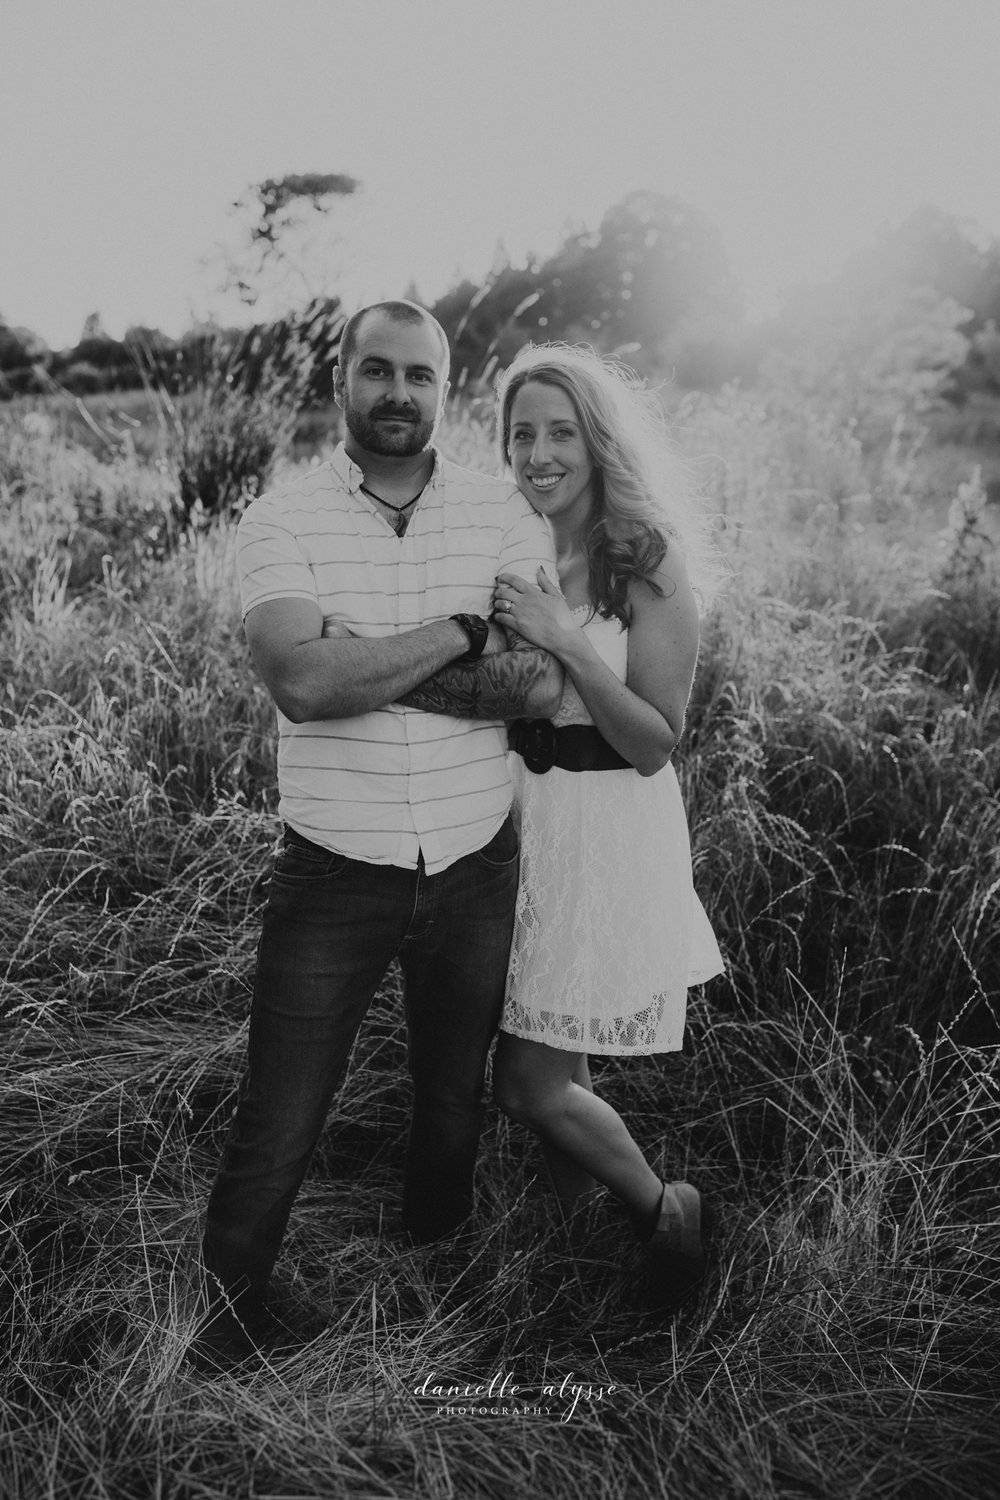 180520_engagement_sarah_jon_dogs_danielle_alysse_photography_elk_grove_photographer_blog_44_WEB.jpg